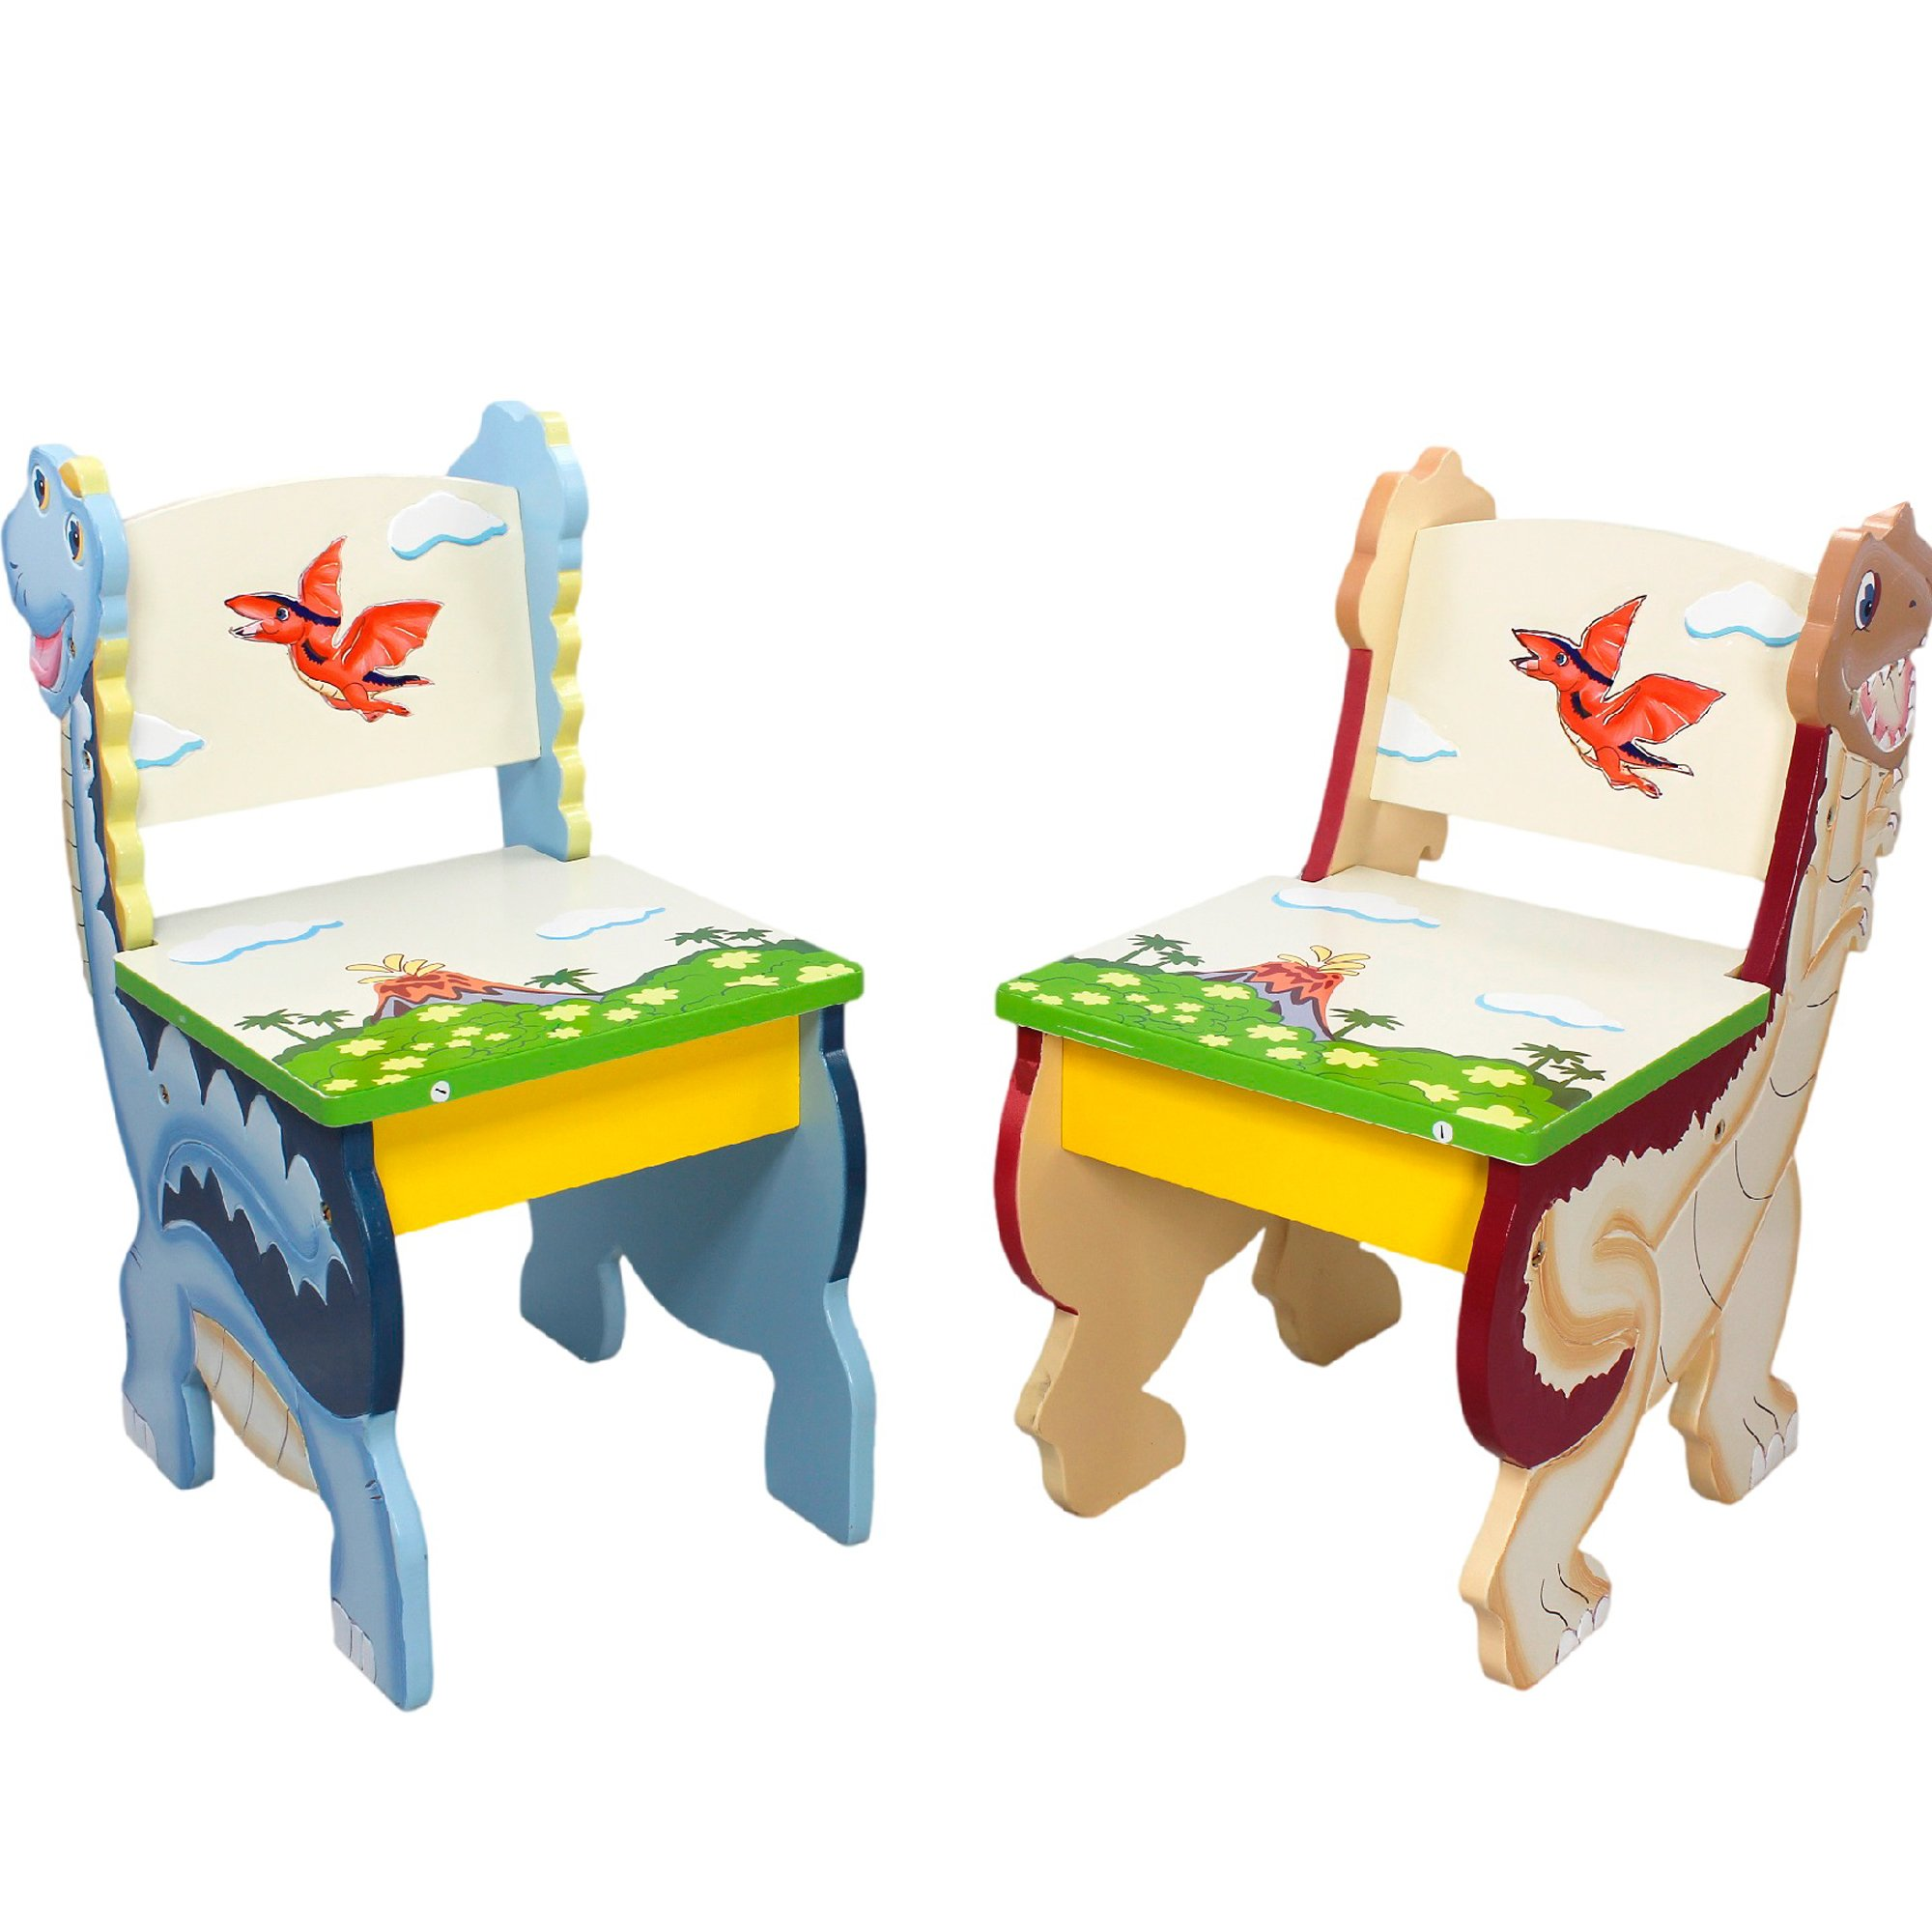 Fantasy Fields - Dinosaur Kingdom Thematic Kids Wooden 2 Chairs Set |Imagination Inspiring Hand Crafted & Hand Painted Details   Non-Toxic, Lead Free Water-based Paint by Fantasy Fields